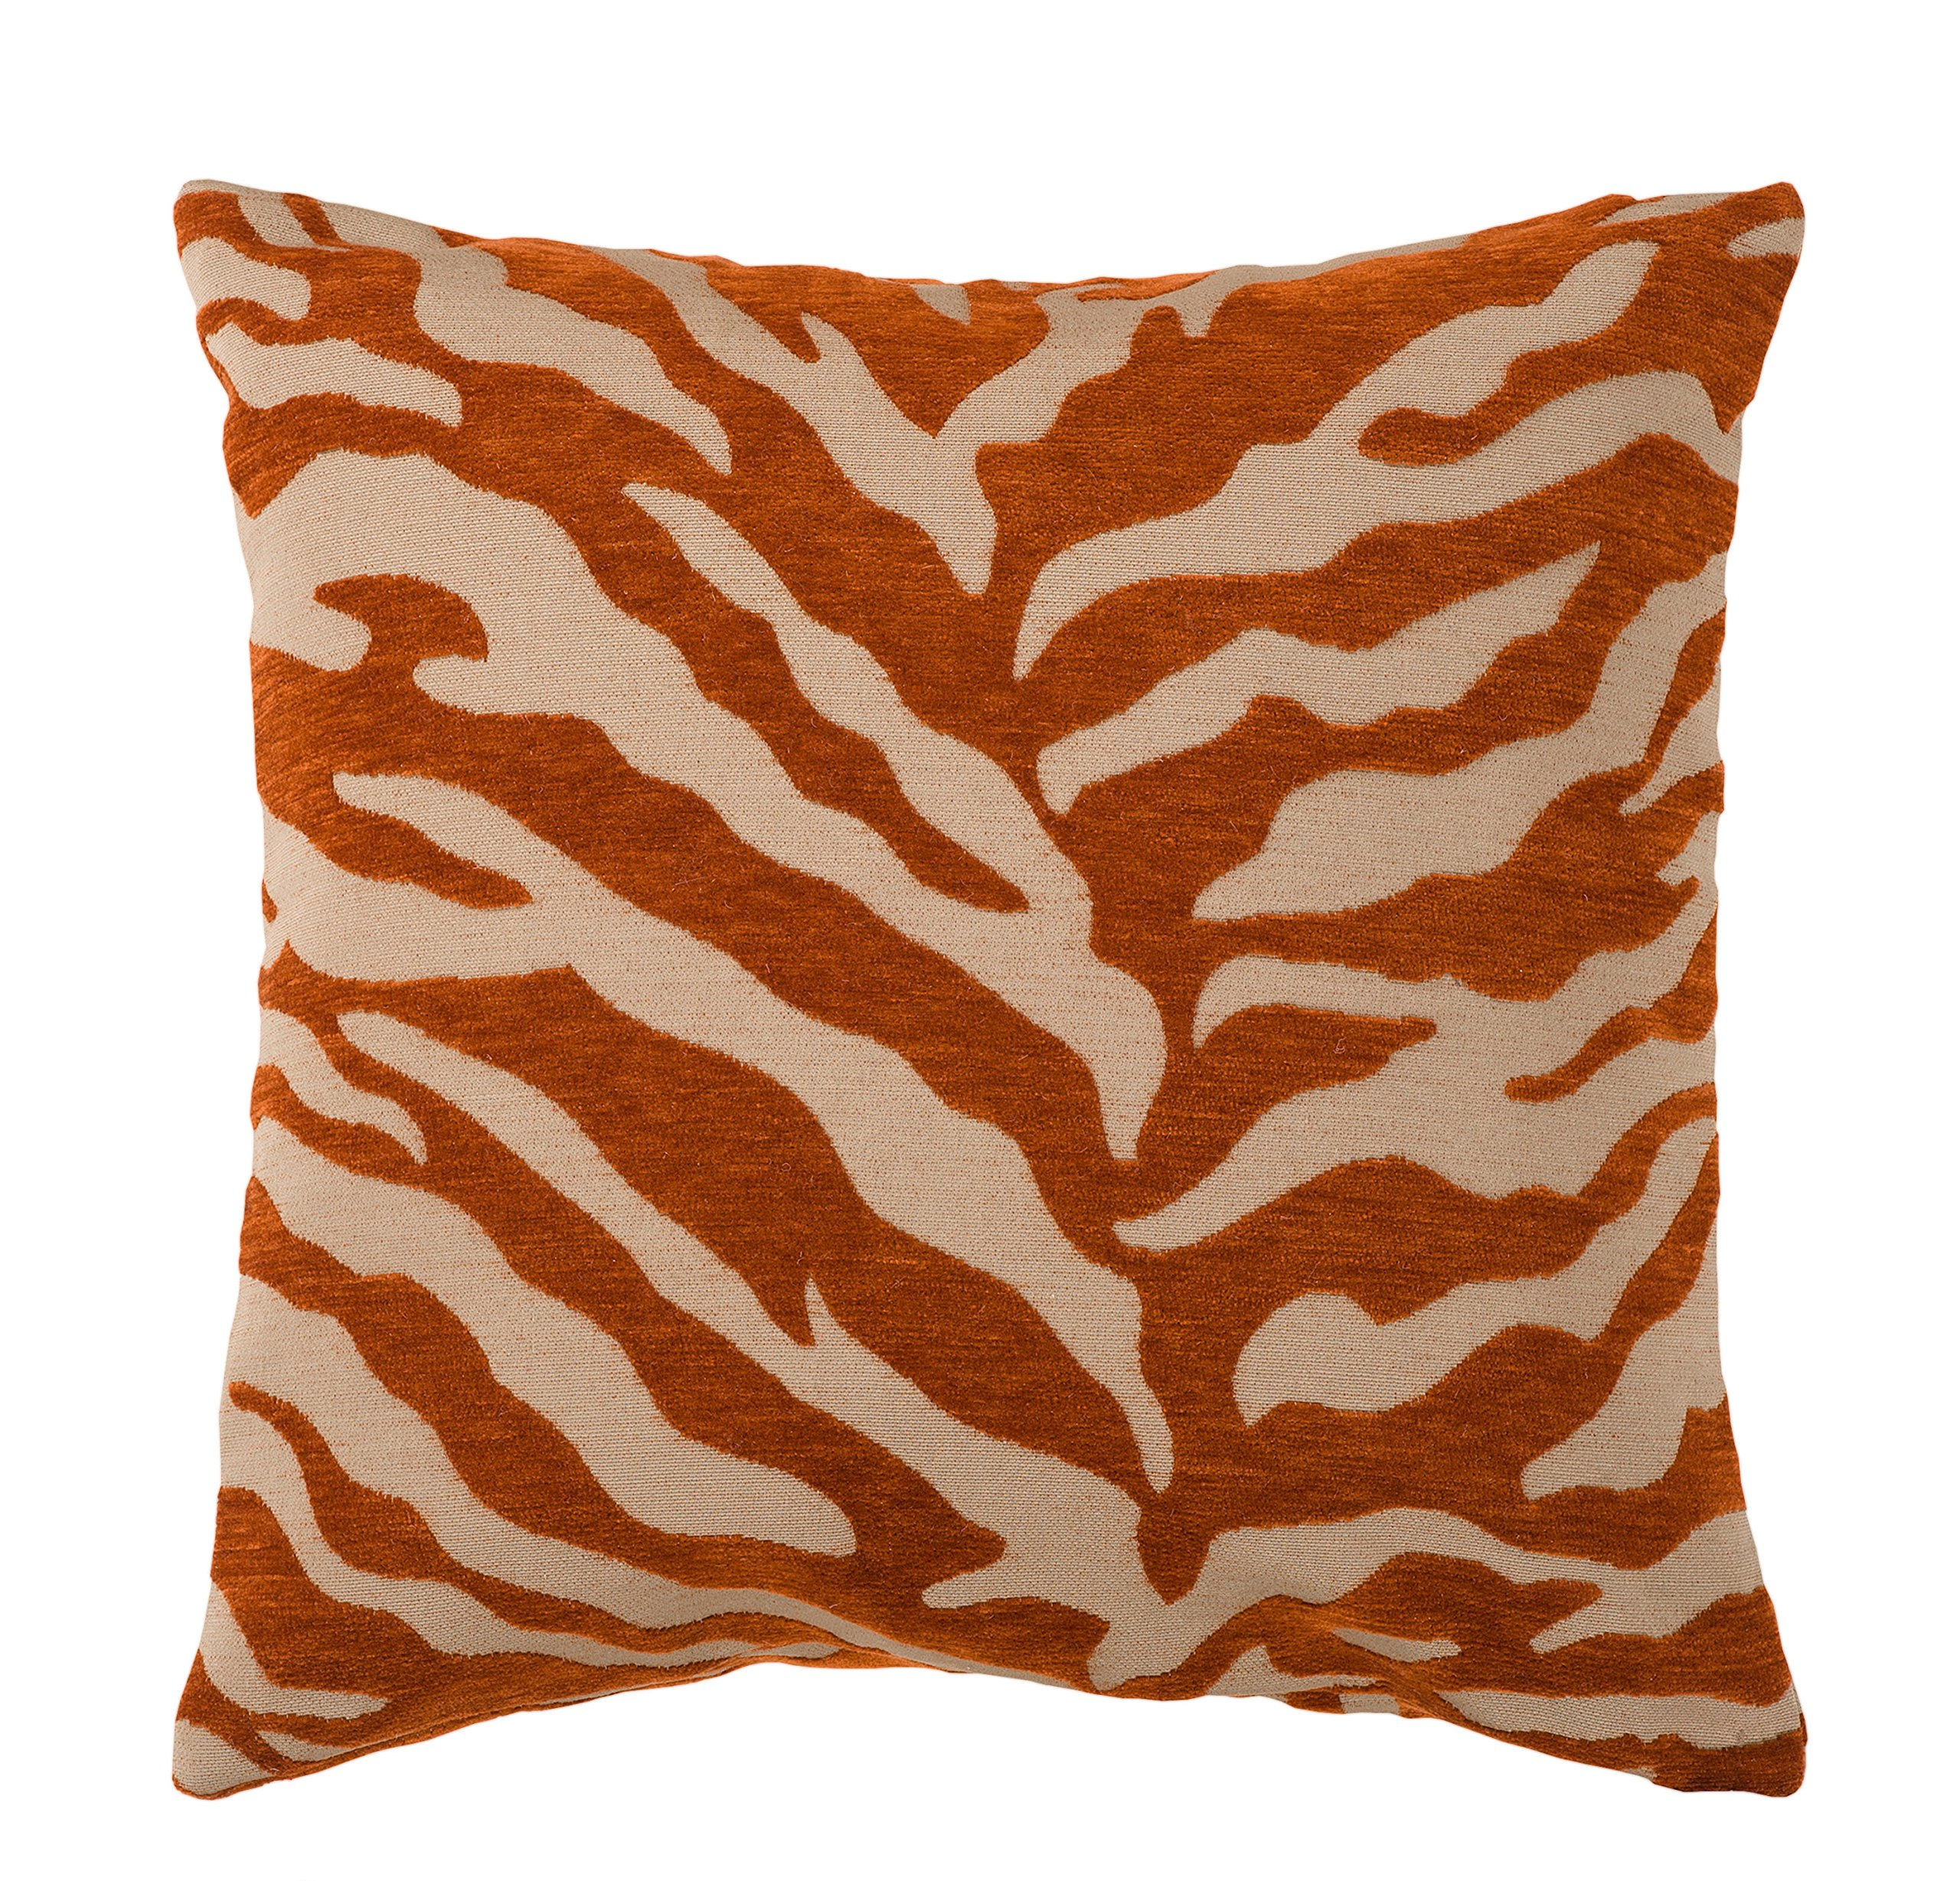 TL Orange Ivory Zebra Stripes Pattern Plush Square Throw Pillow 18-Inch, Beautiful Jungle, African Safari Wild Animal Textured Print Sofa Cushion, Poly Filled, Removable Cover, Bold Colors, Polyester